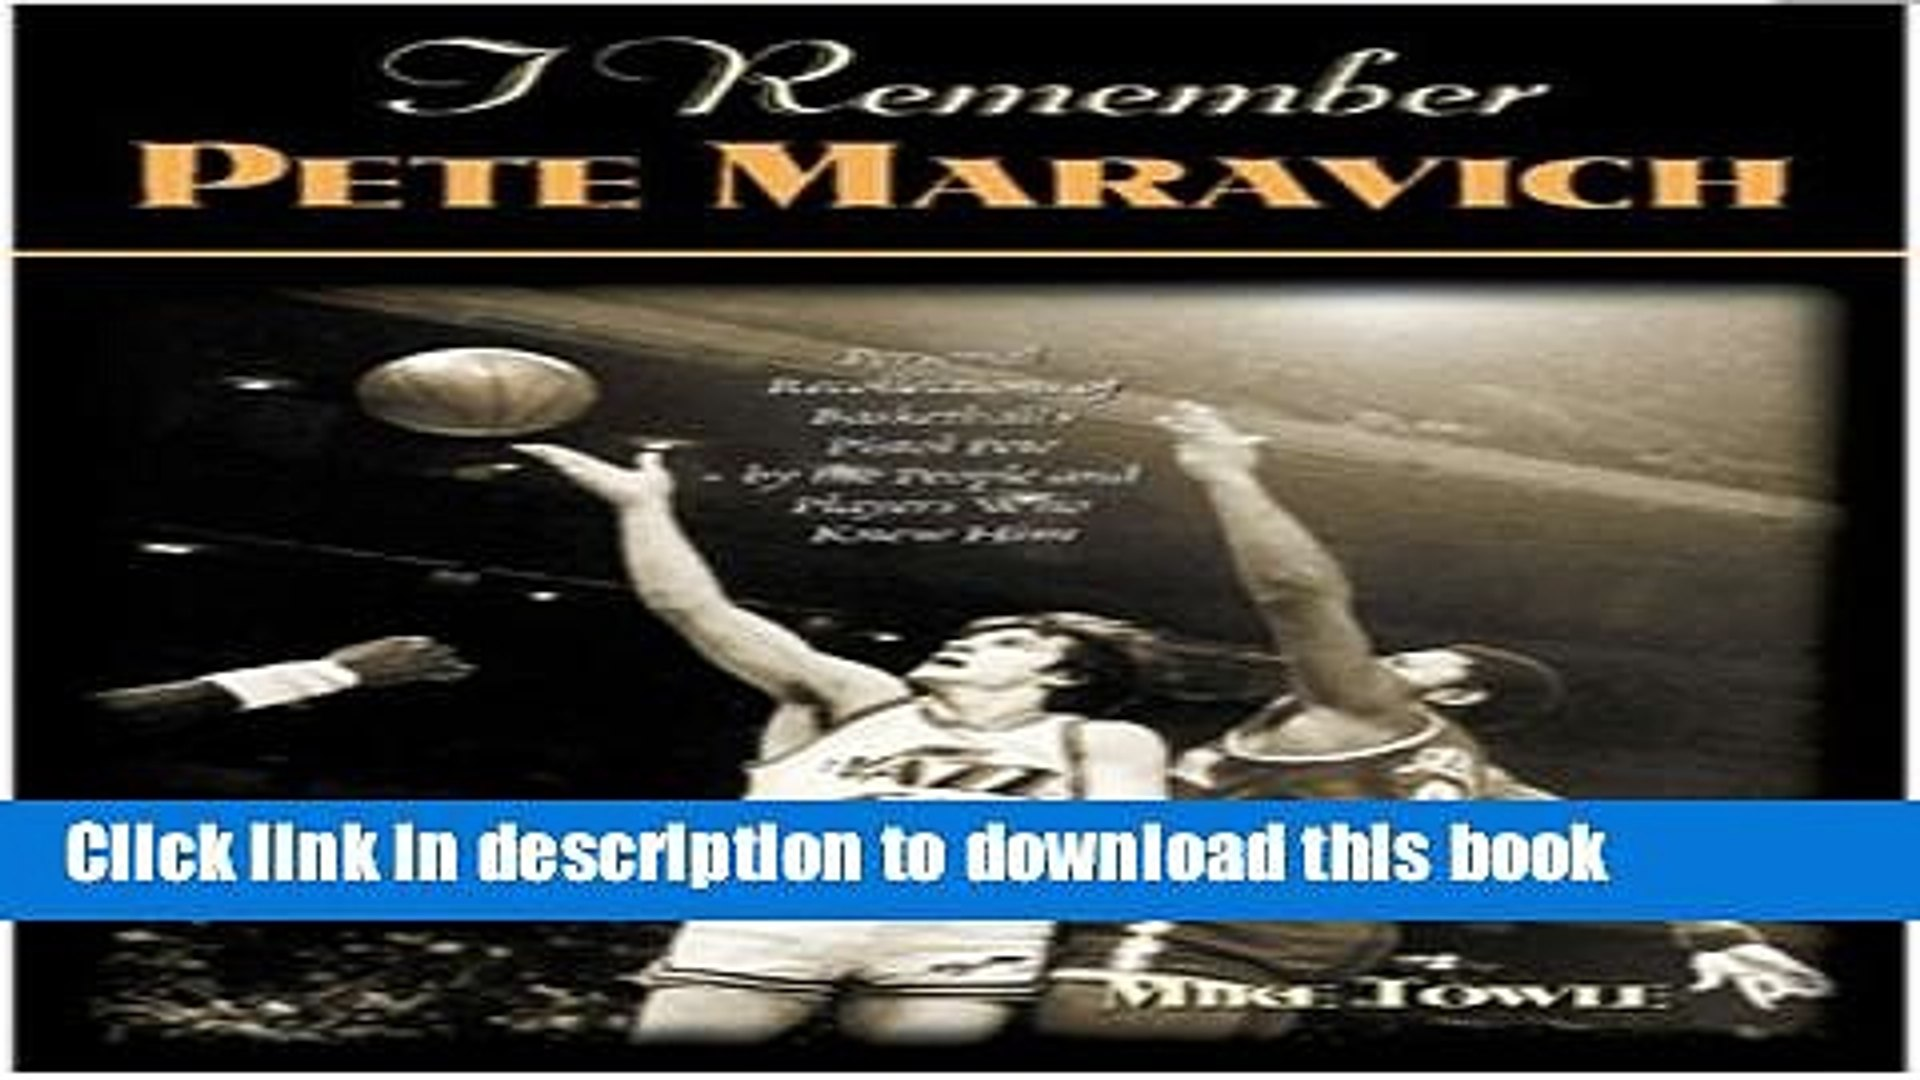 [PDF] I Remember Pete Maravich: Personal Recollections of Basketballs Pistol Pete Free E-Book Online